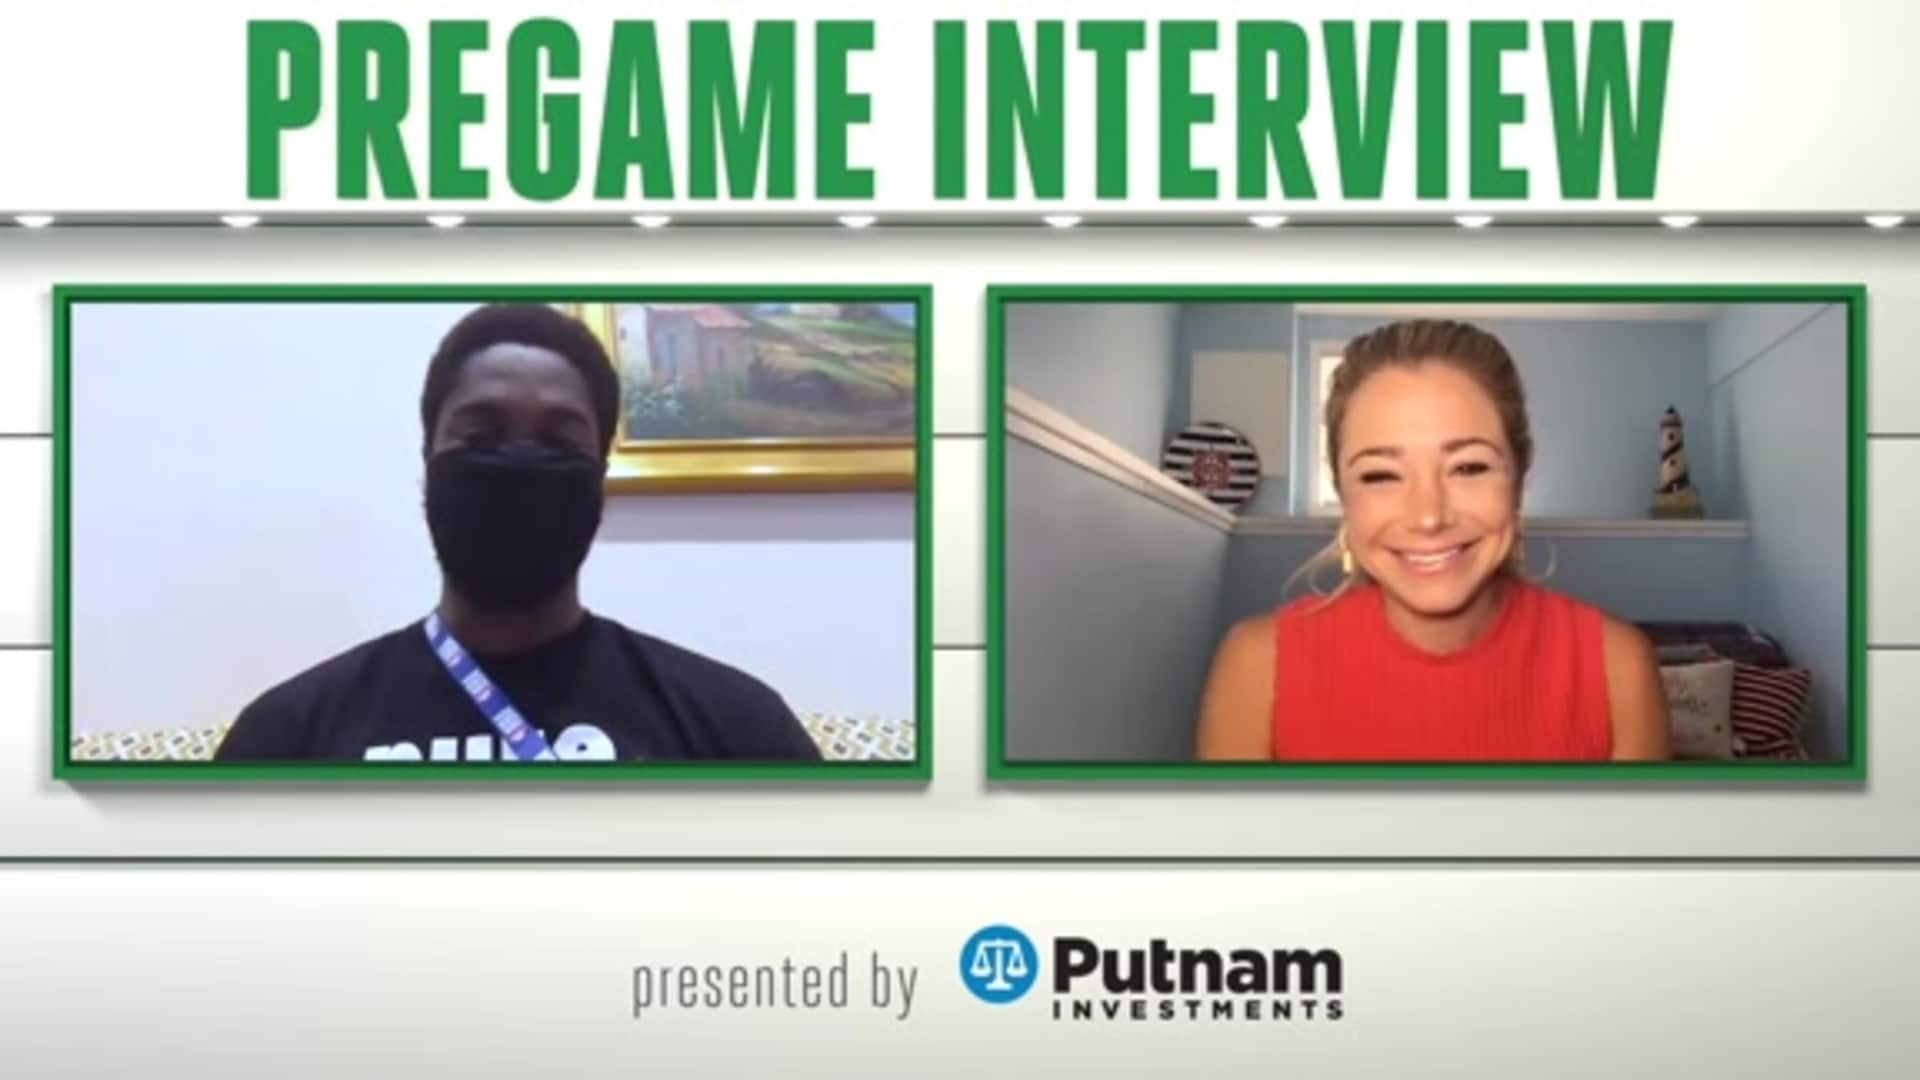 8/9 Putnam Pregame Interview: Defensive Mindset